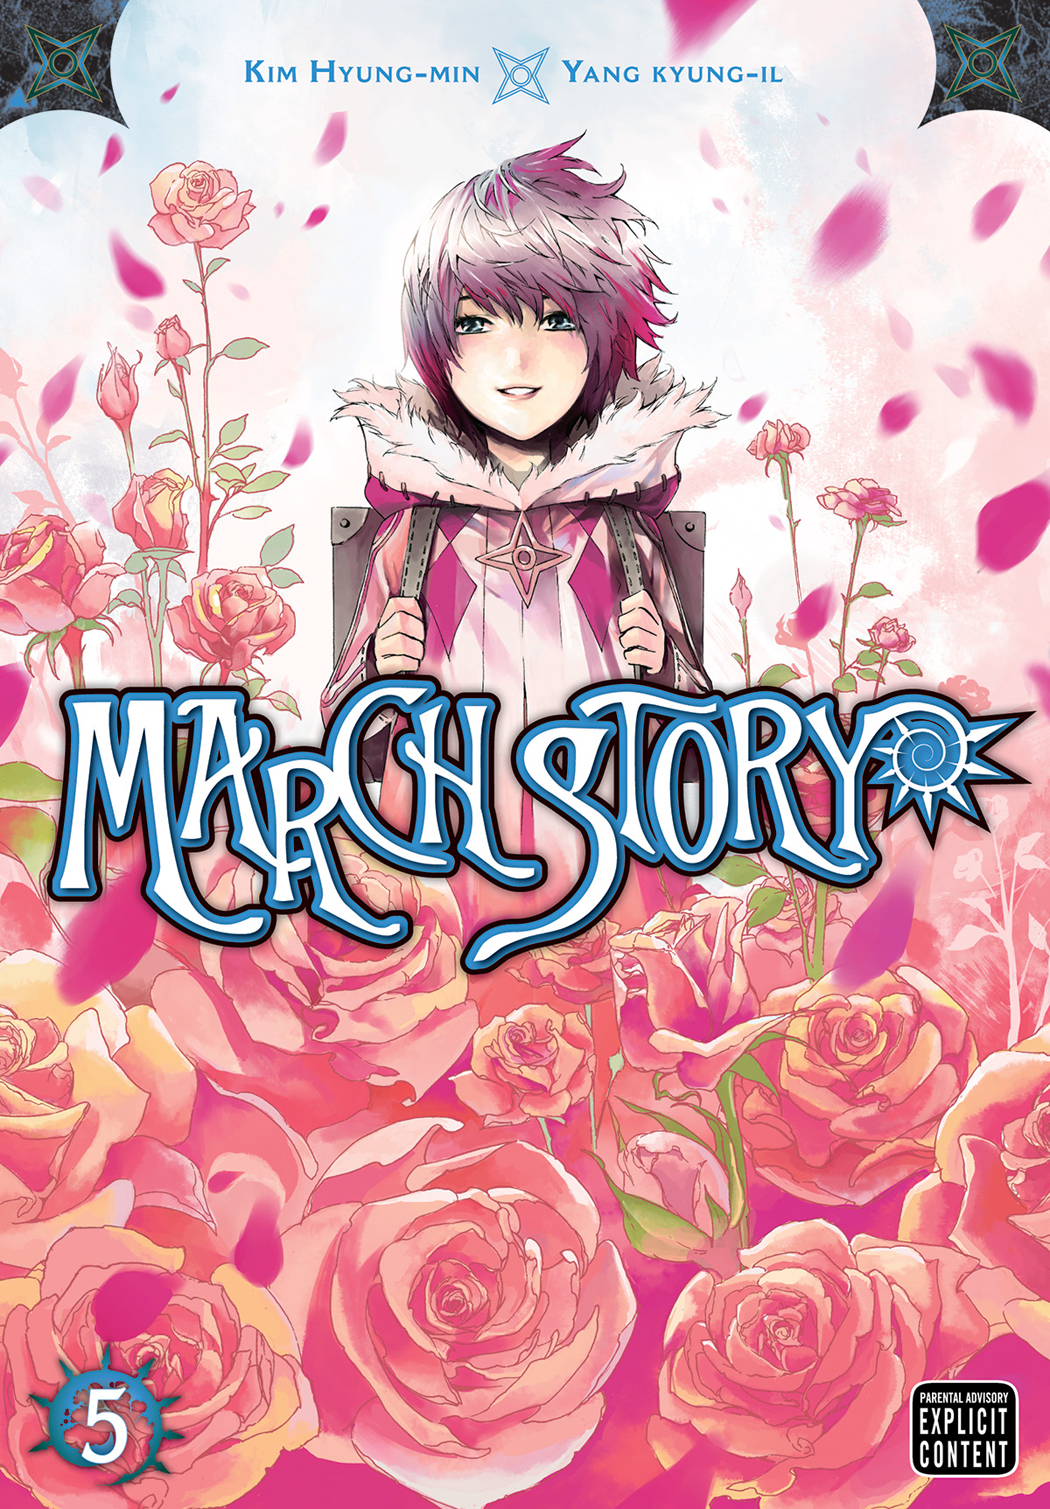 MARCH STORY GN VOL 05